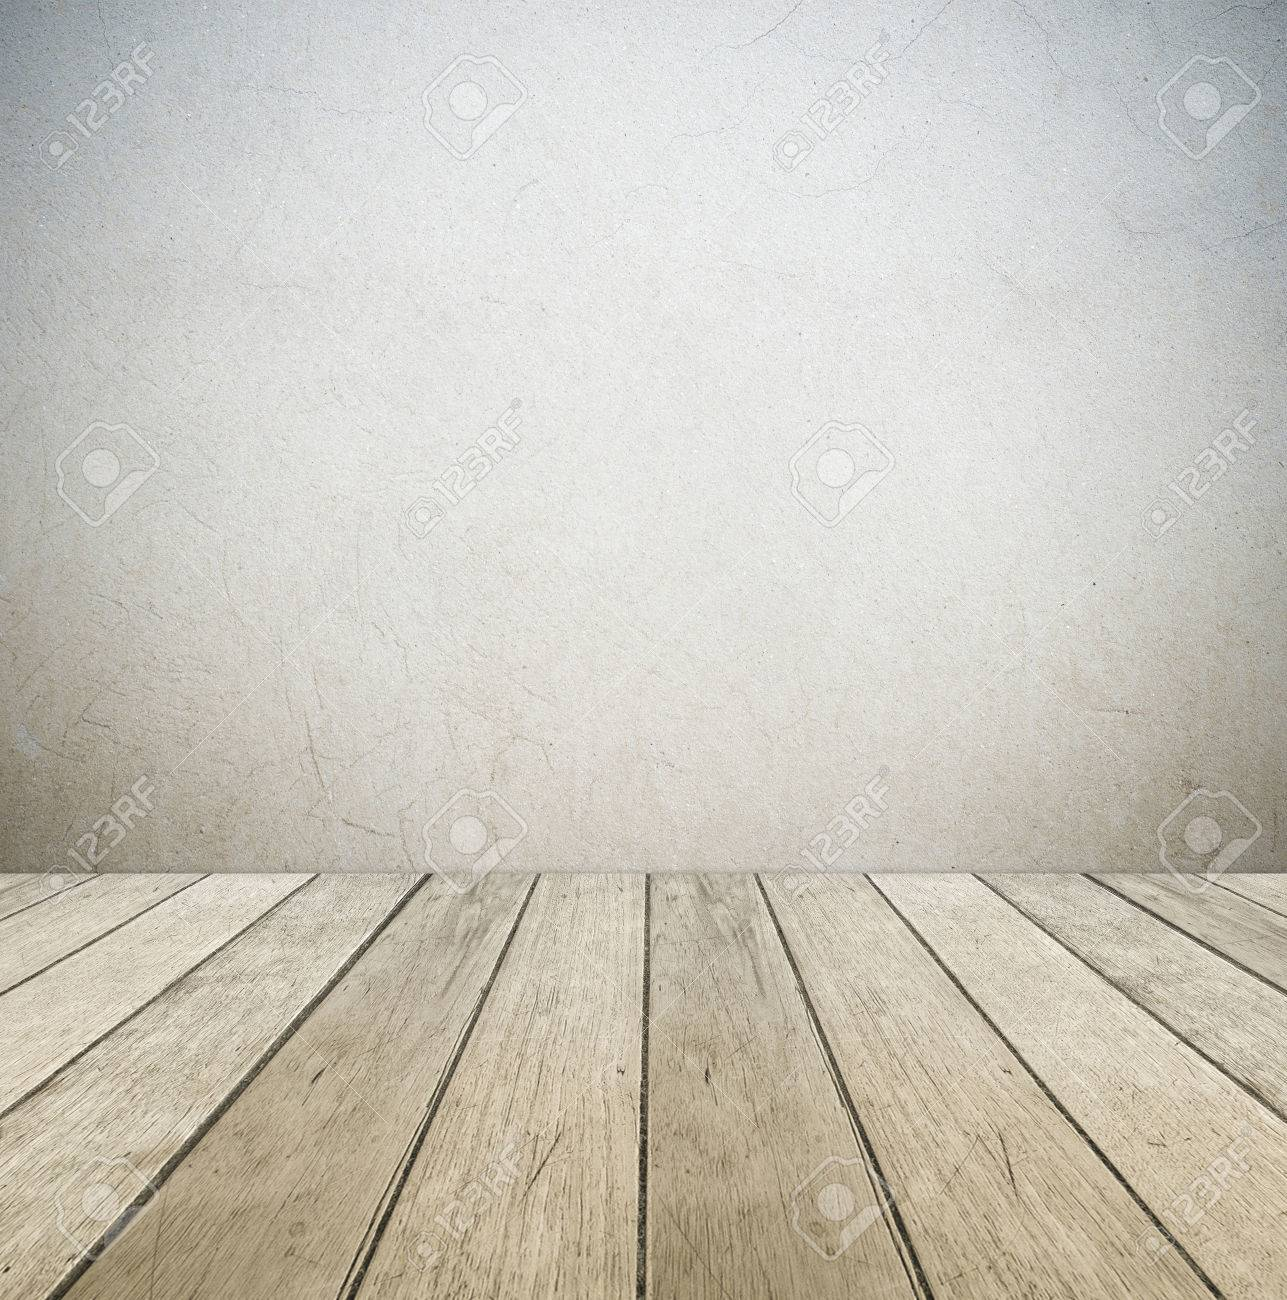 wood floor perspective. Cement Wall And Vintage Wooden Floor, Perspective View, Grunge Background, Template Stock Photo Wood Floor F